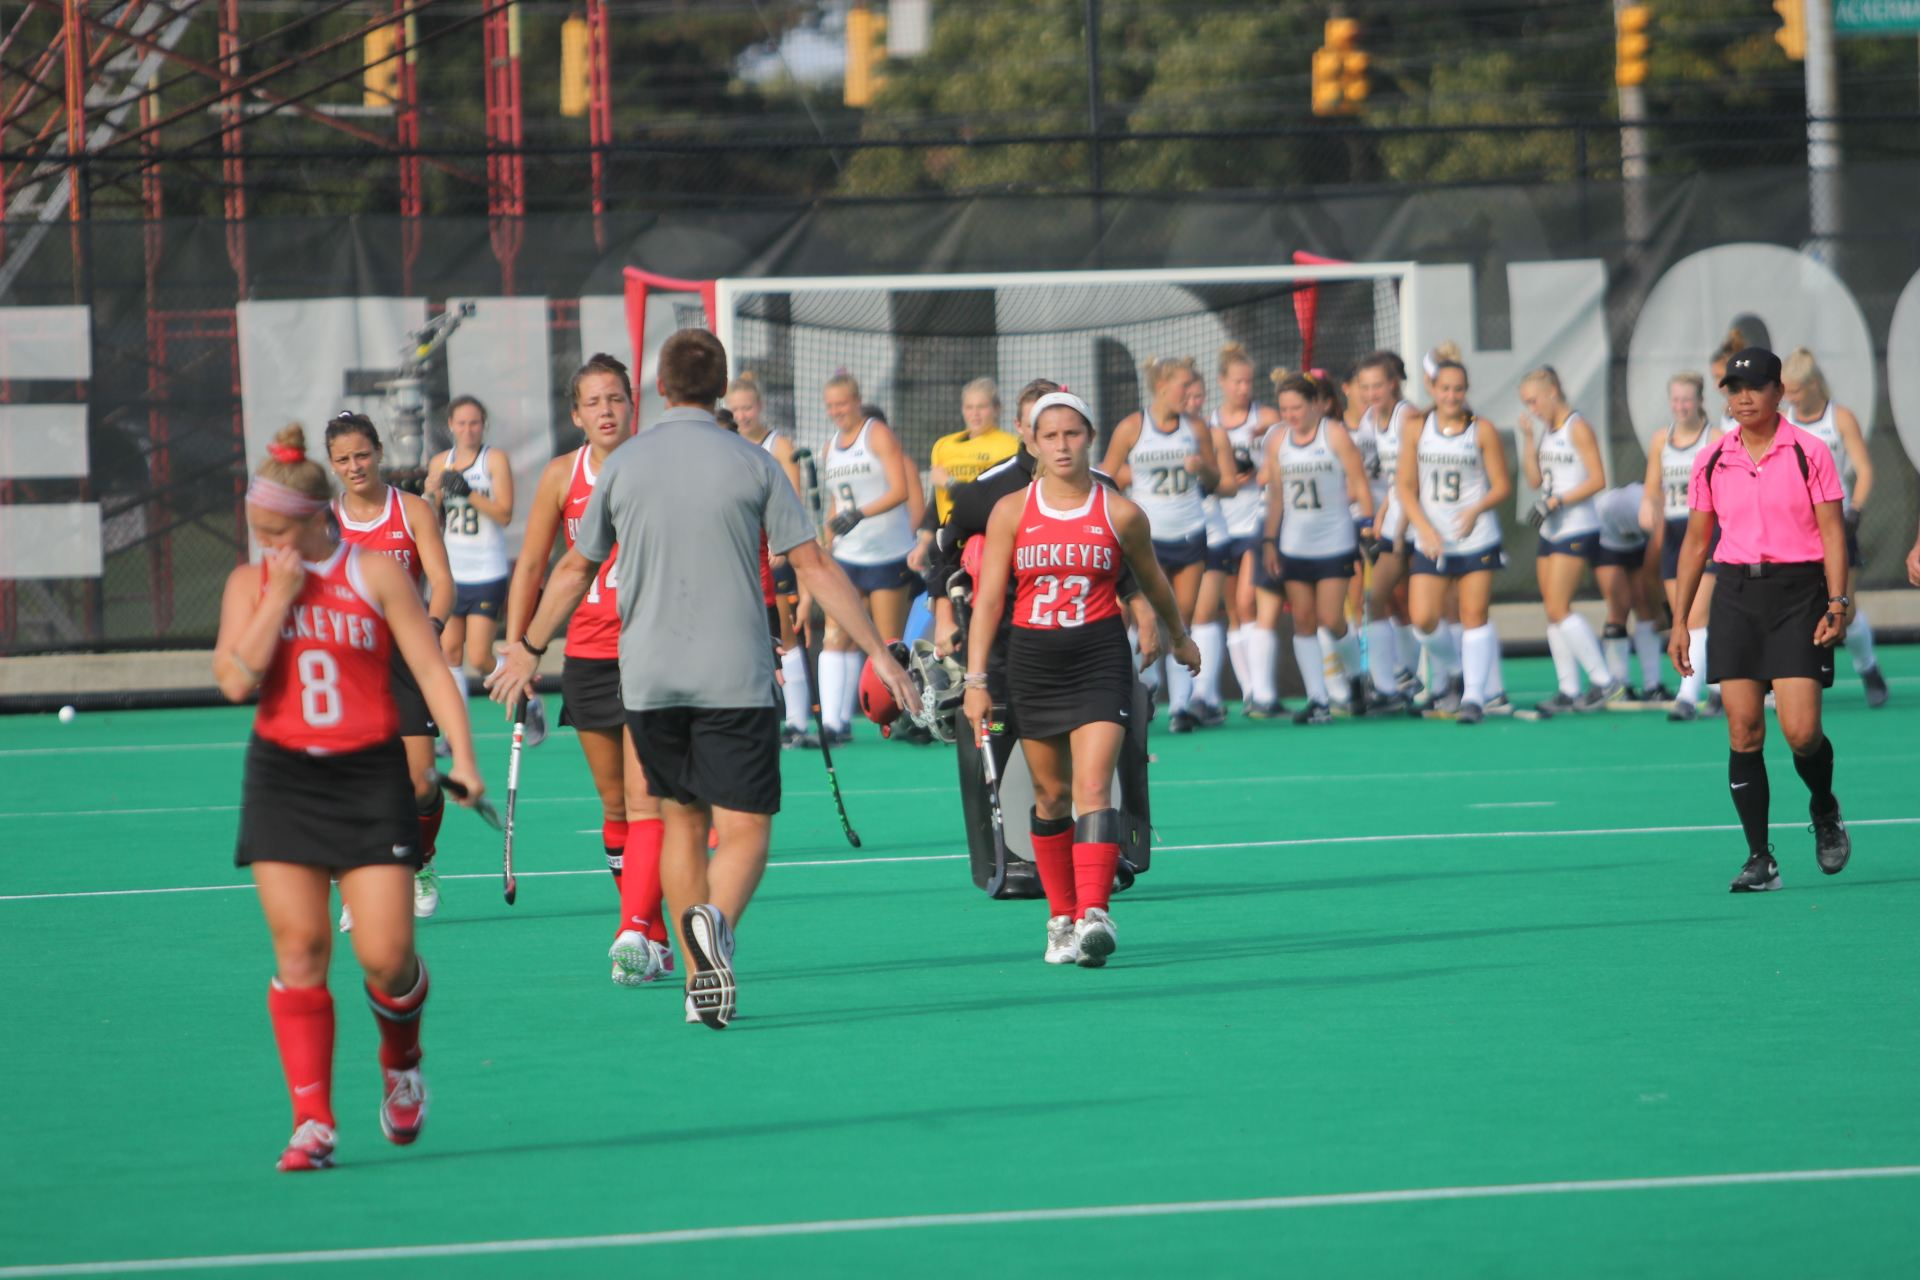 Field Hockey: Five straight goals by No. 2 Maryland down Ohio State on senior day